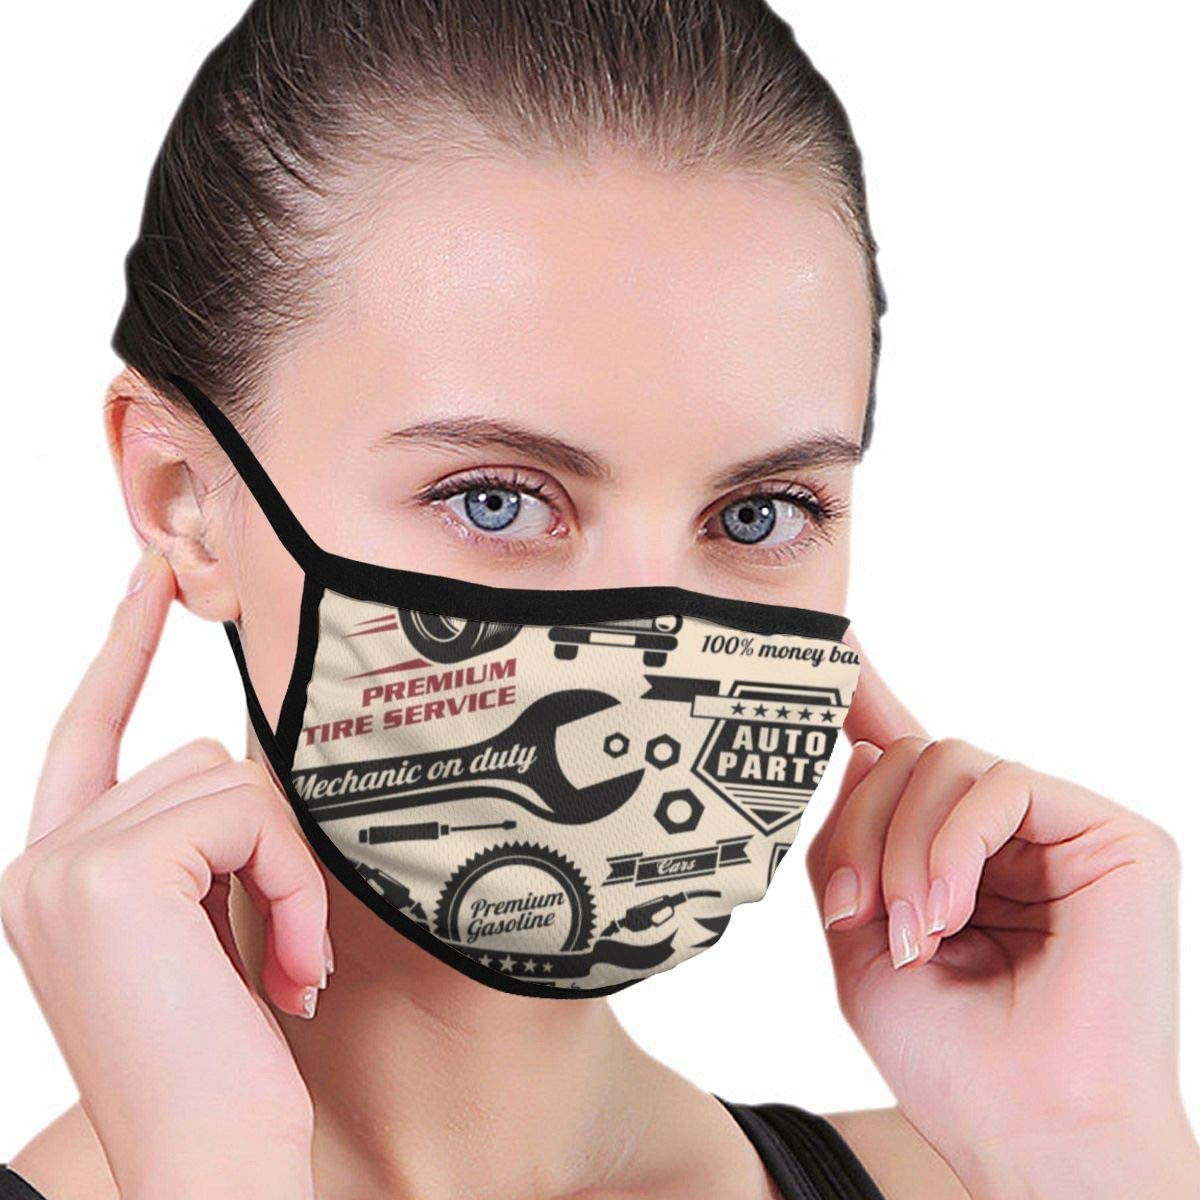 RANYG Men Women Anti-Dust Mouth Cover Half Face Multi Usage Face Cover Up Reusable Adjustable Earloop Dust Face Cover